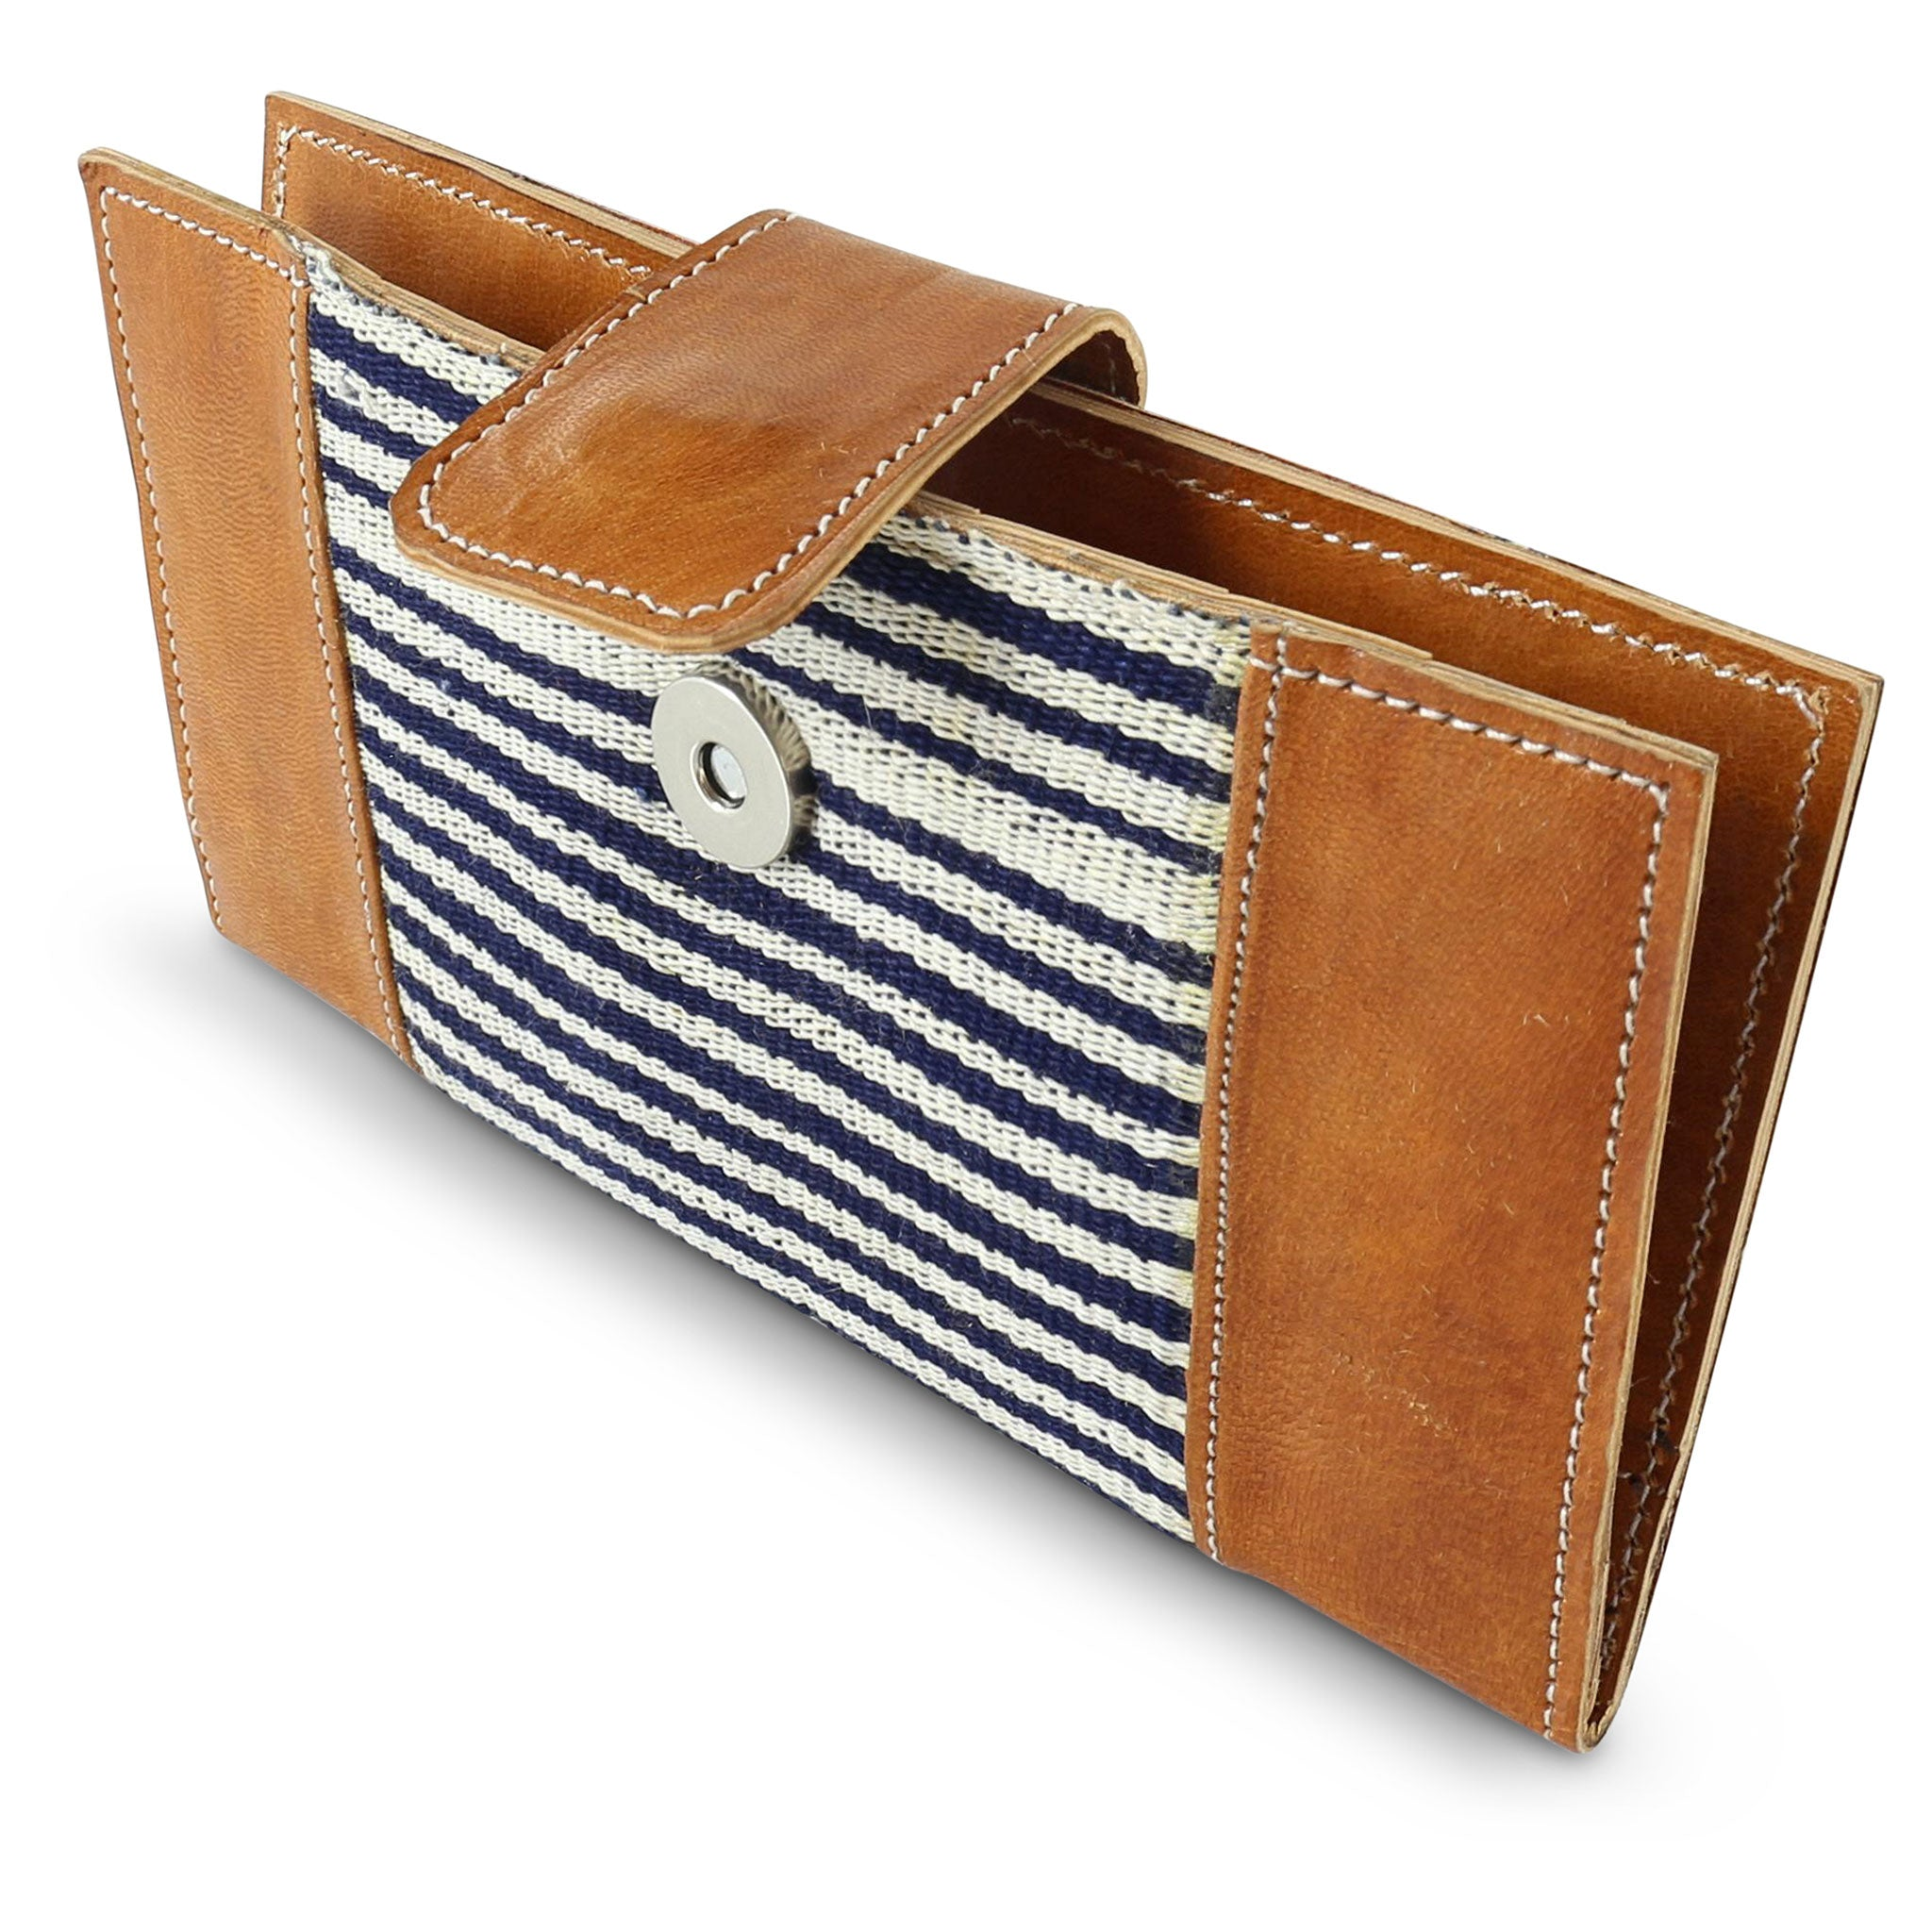 Country Cloth Wallet: Tan + Narrow Indigo